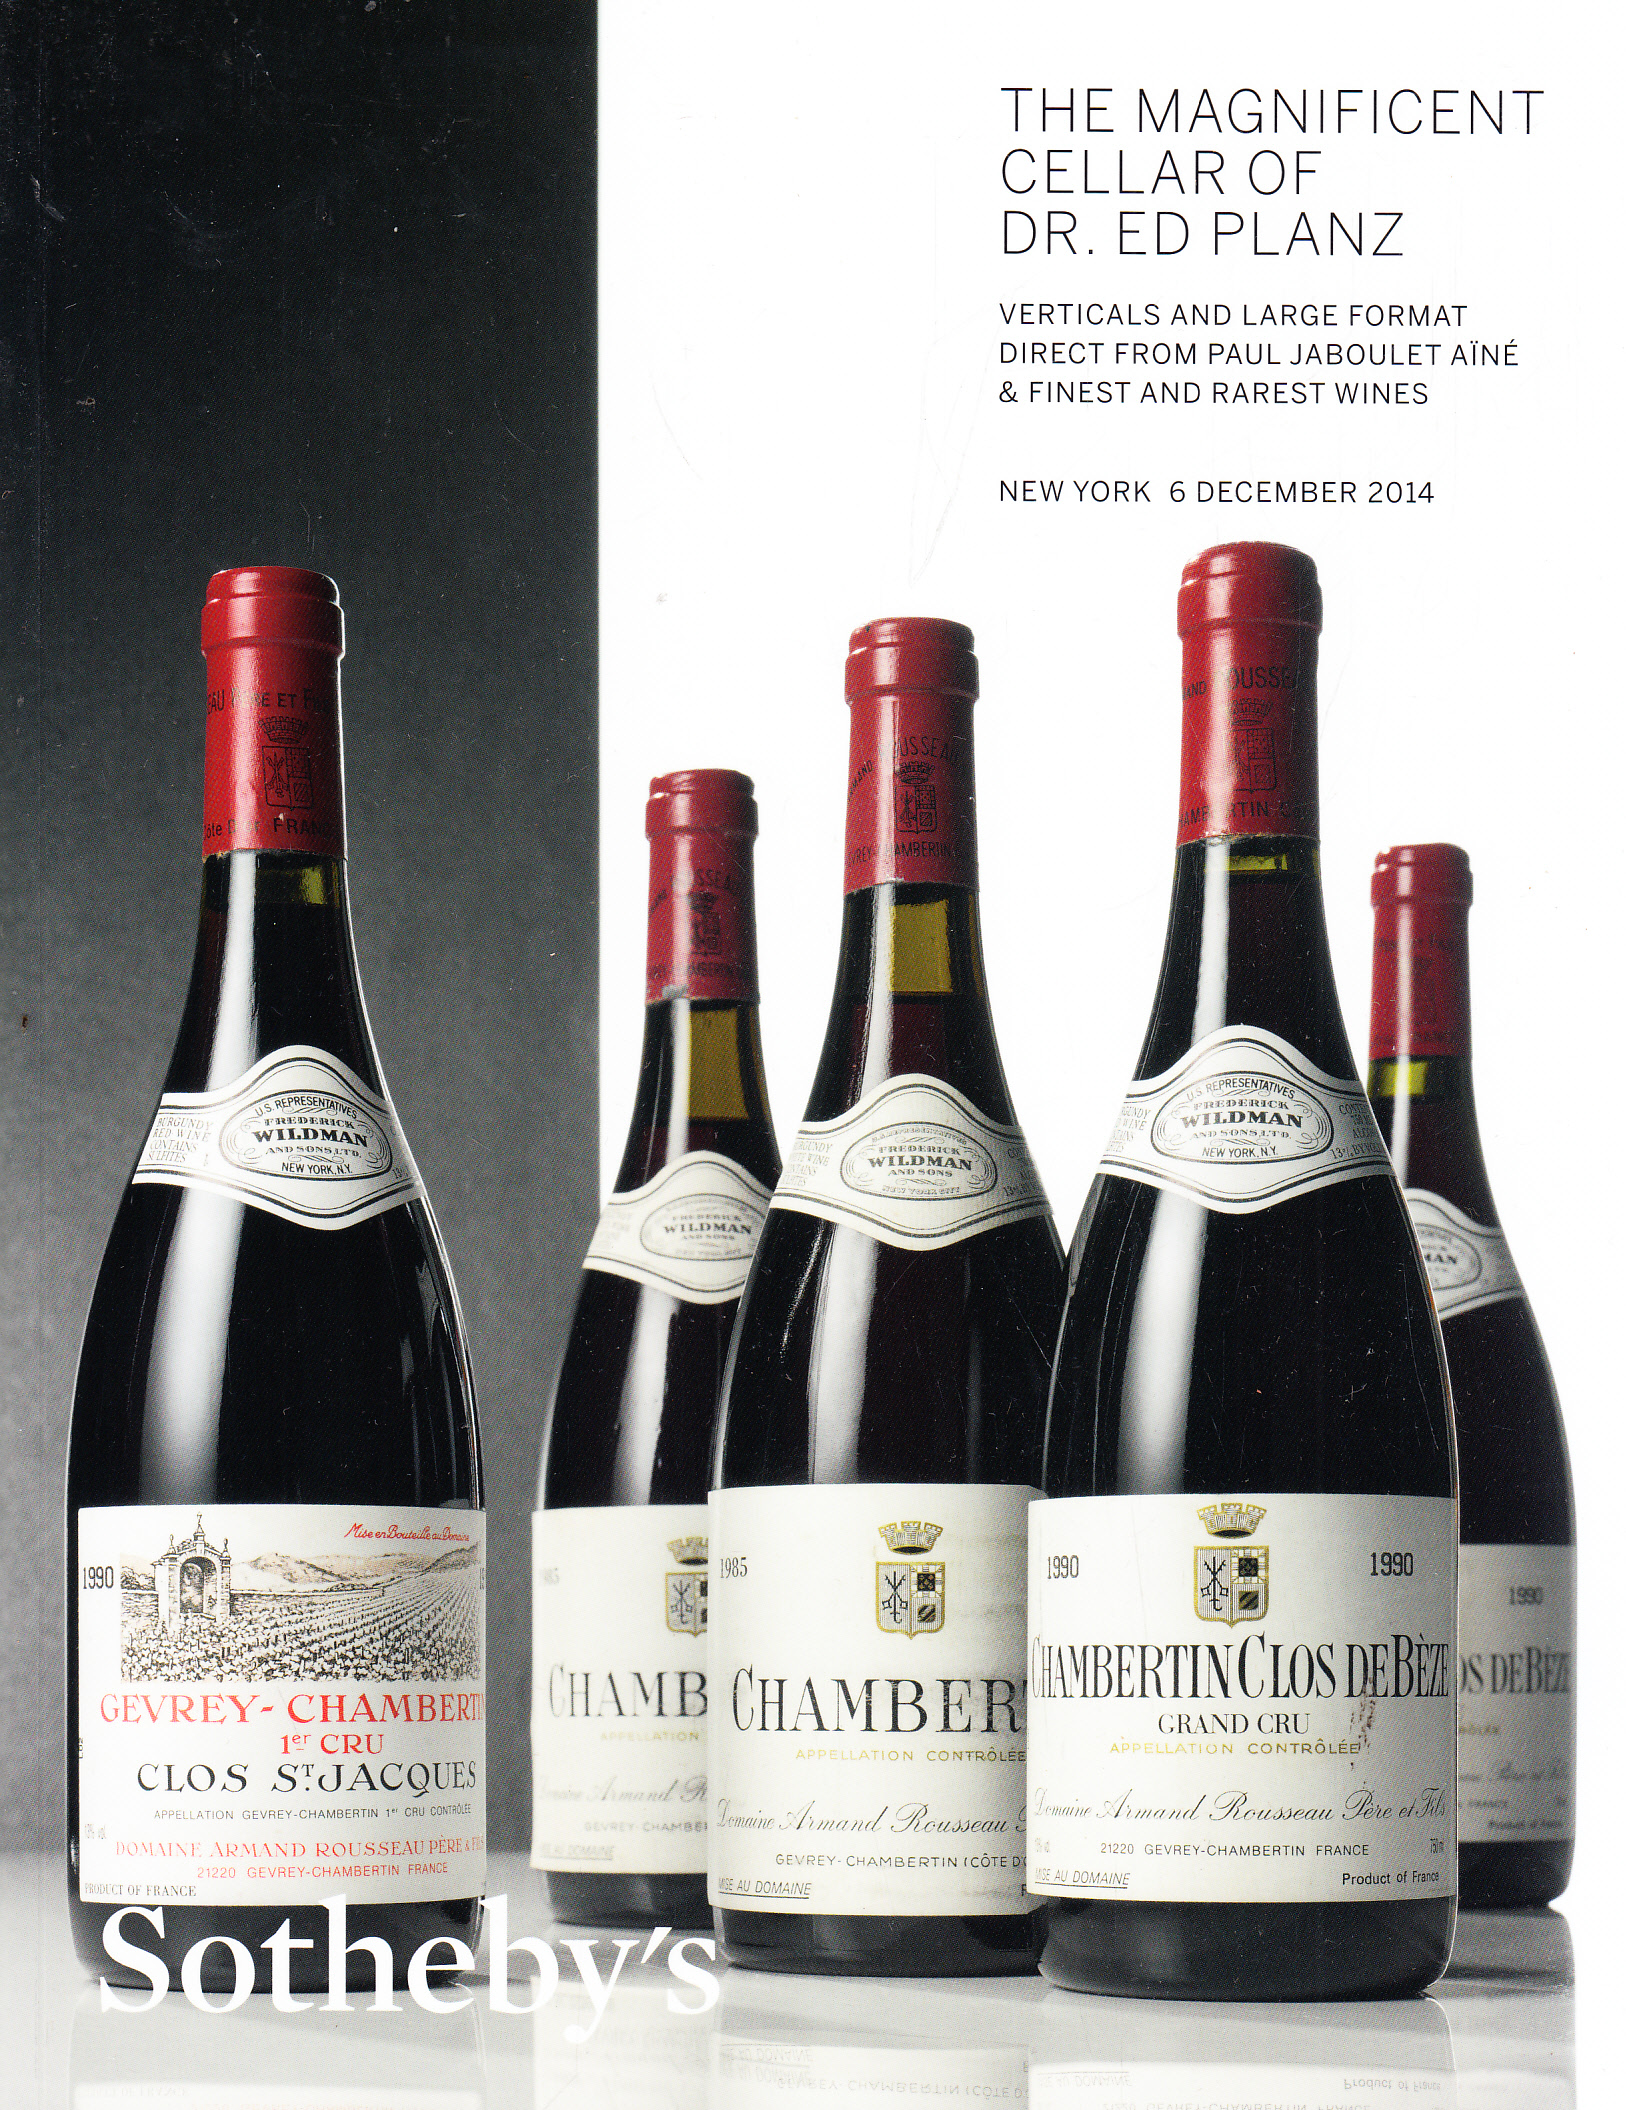 Sotheby's The Magnificent Cellar of Dr. Ed Planz ...